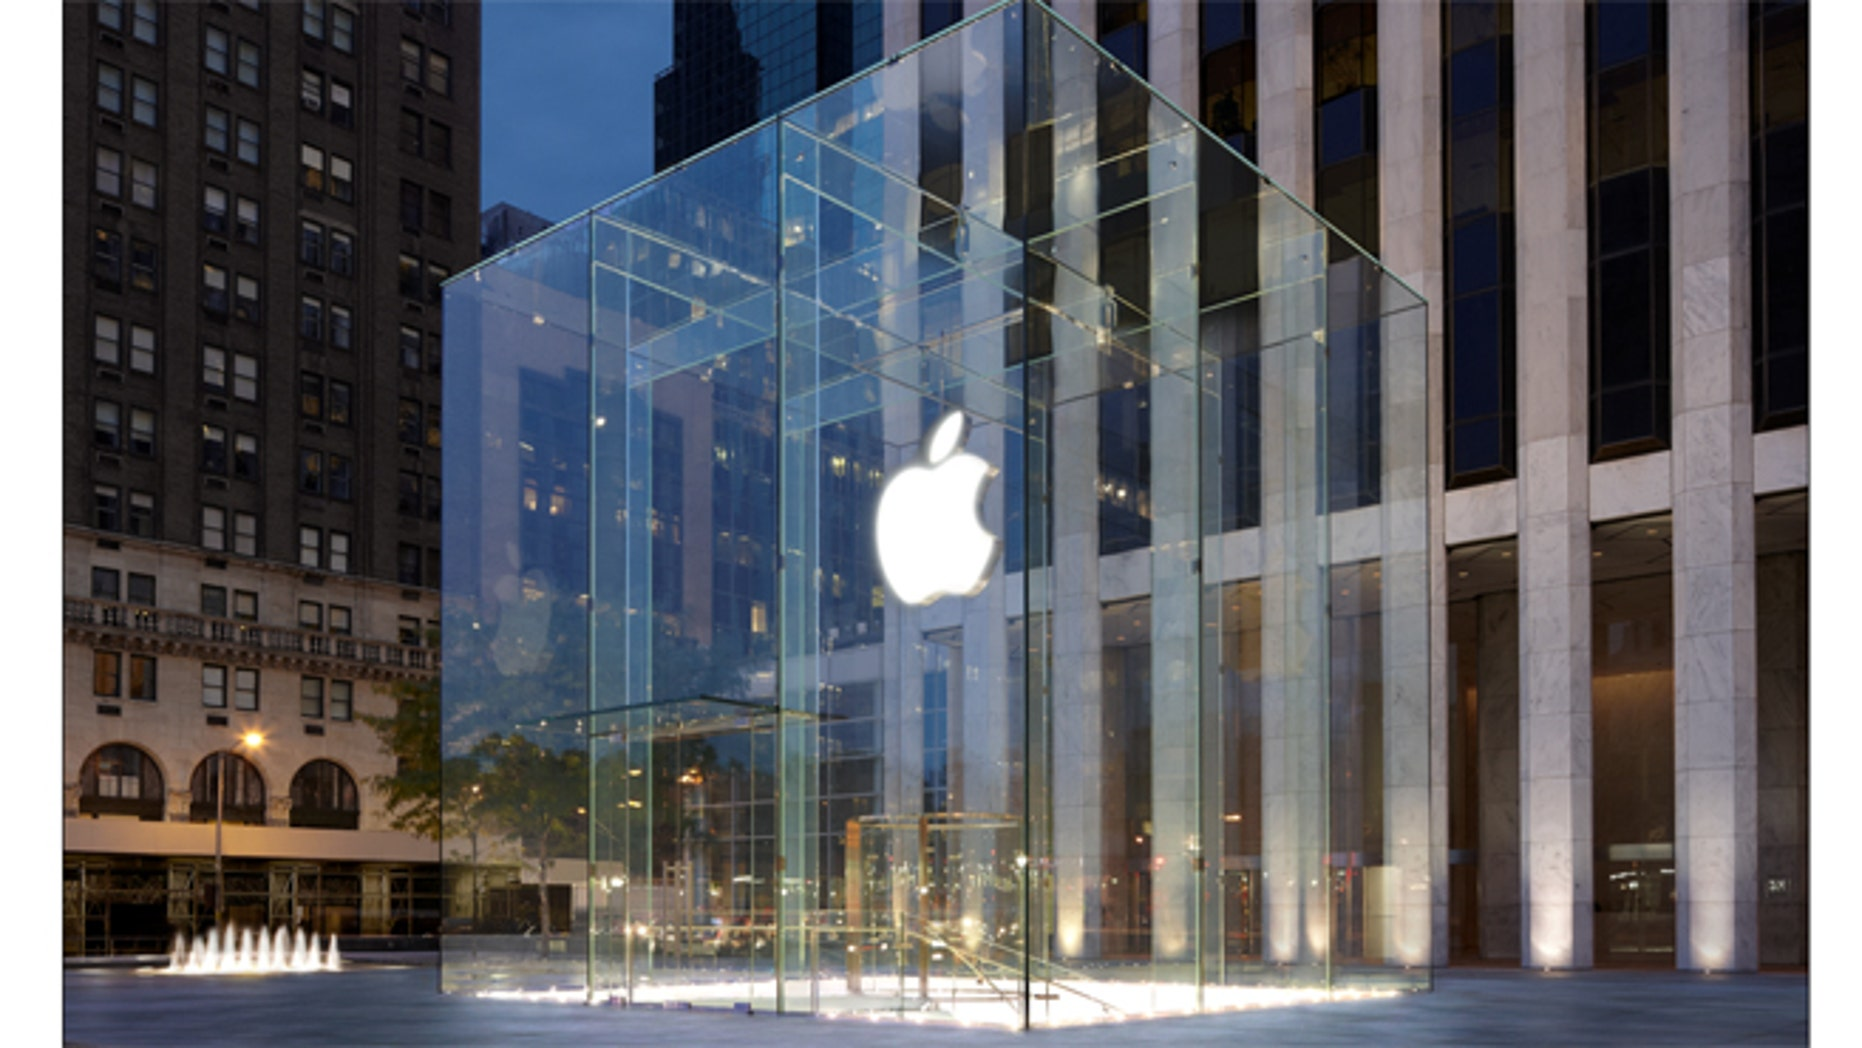 The Apple Store on 5th avenue in New York City.